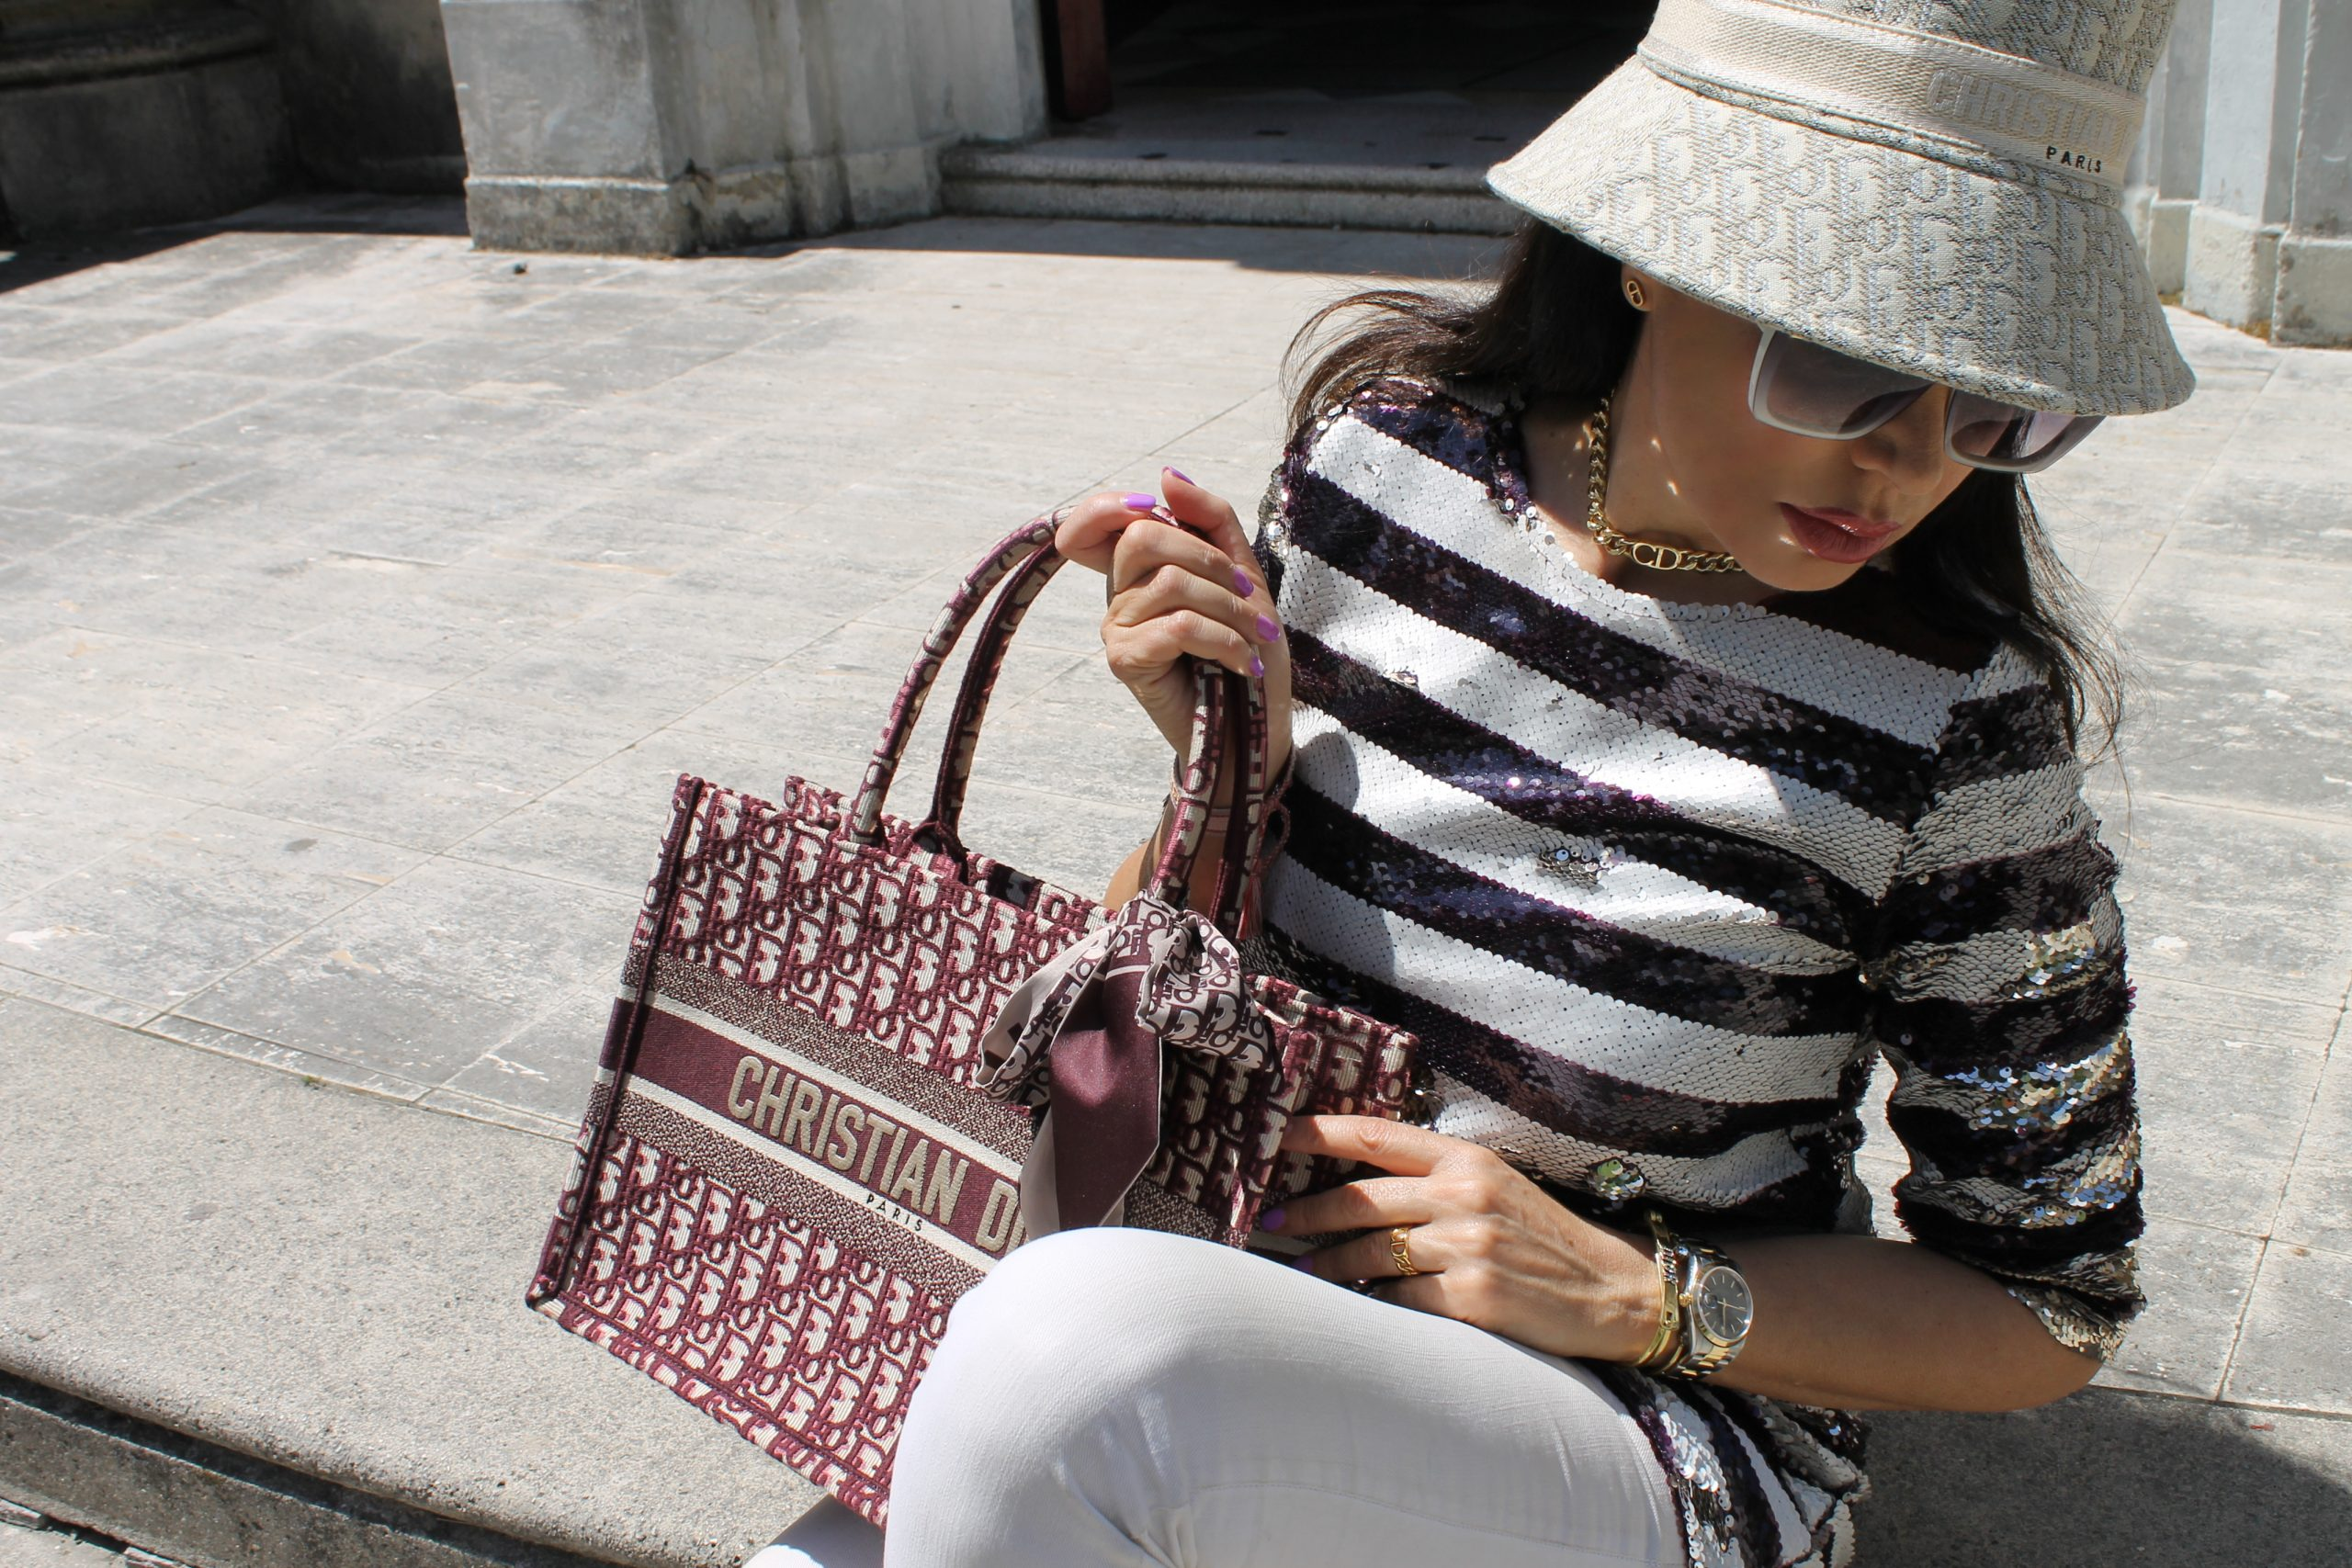 Travel Look Comfy and Chic Outfit Spring Idea Levi's Dior Bag Rome Paola Lauretano